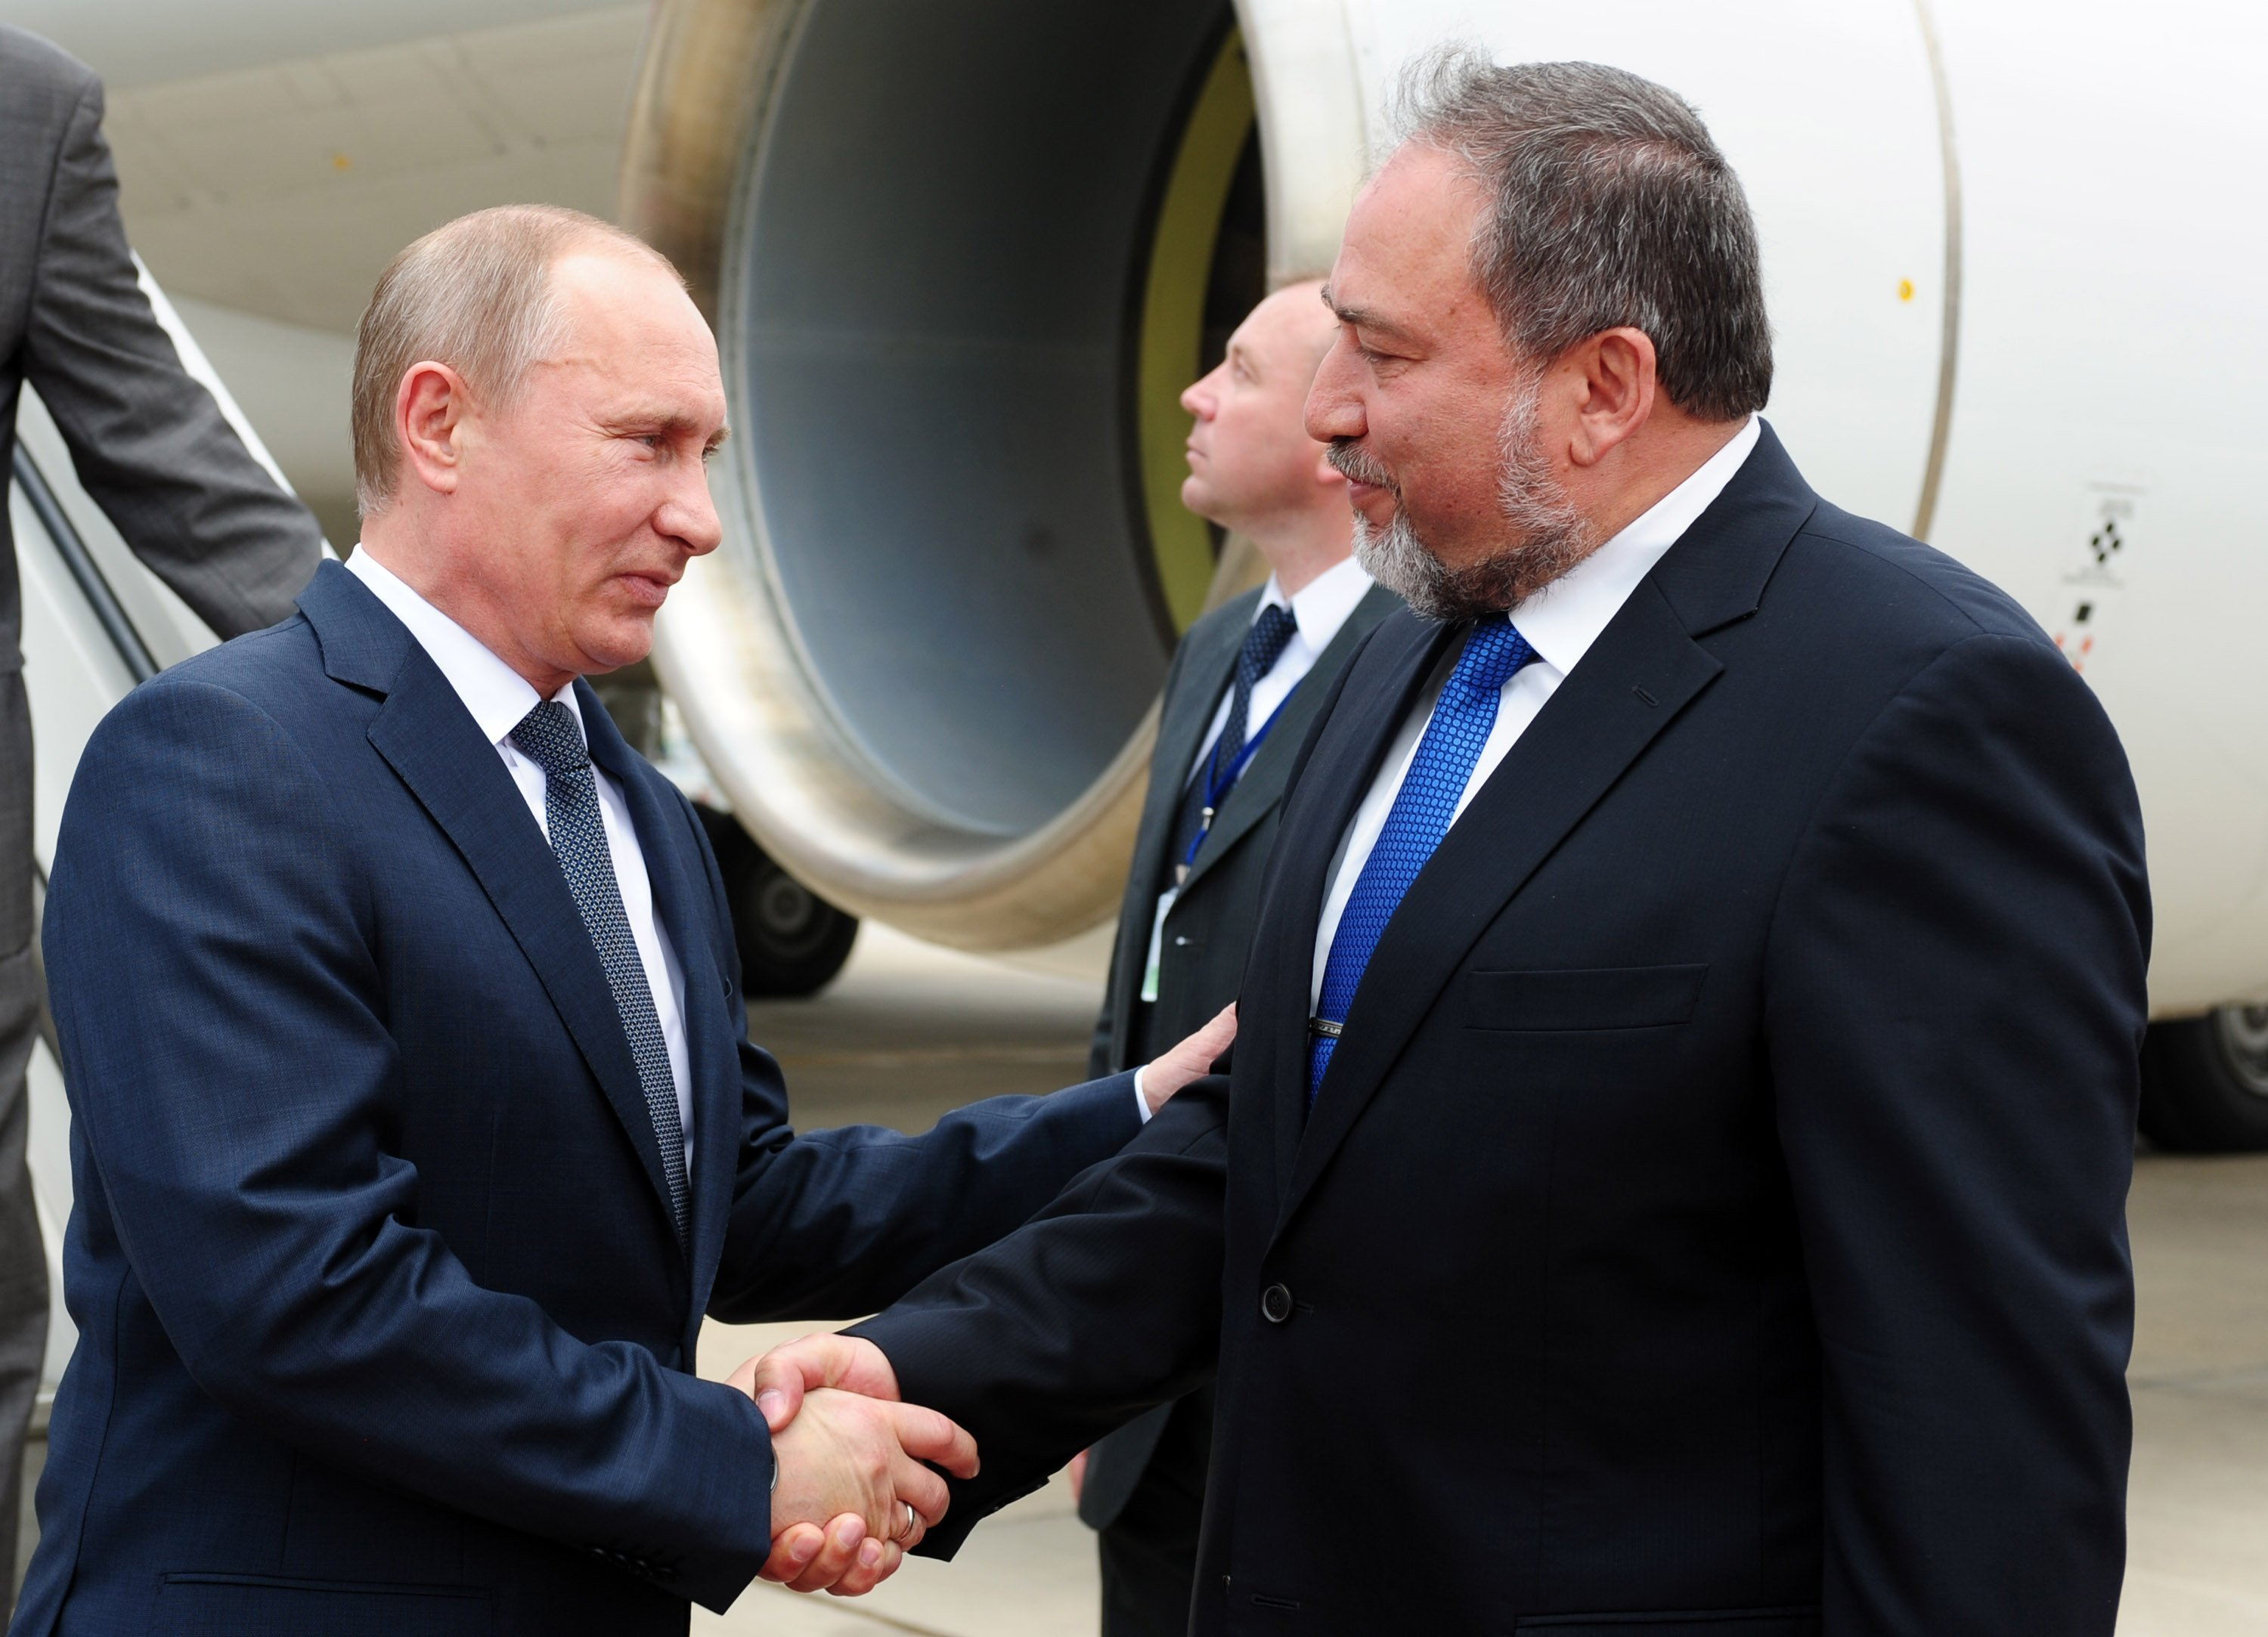 Lieberman Appointed Israeli KGB Agent to Senior Government Role, Then He Disappeared - Tikun Olam תיקון עולם